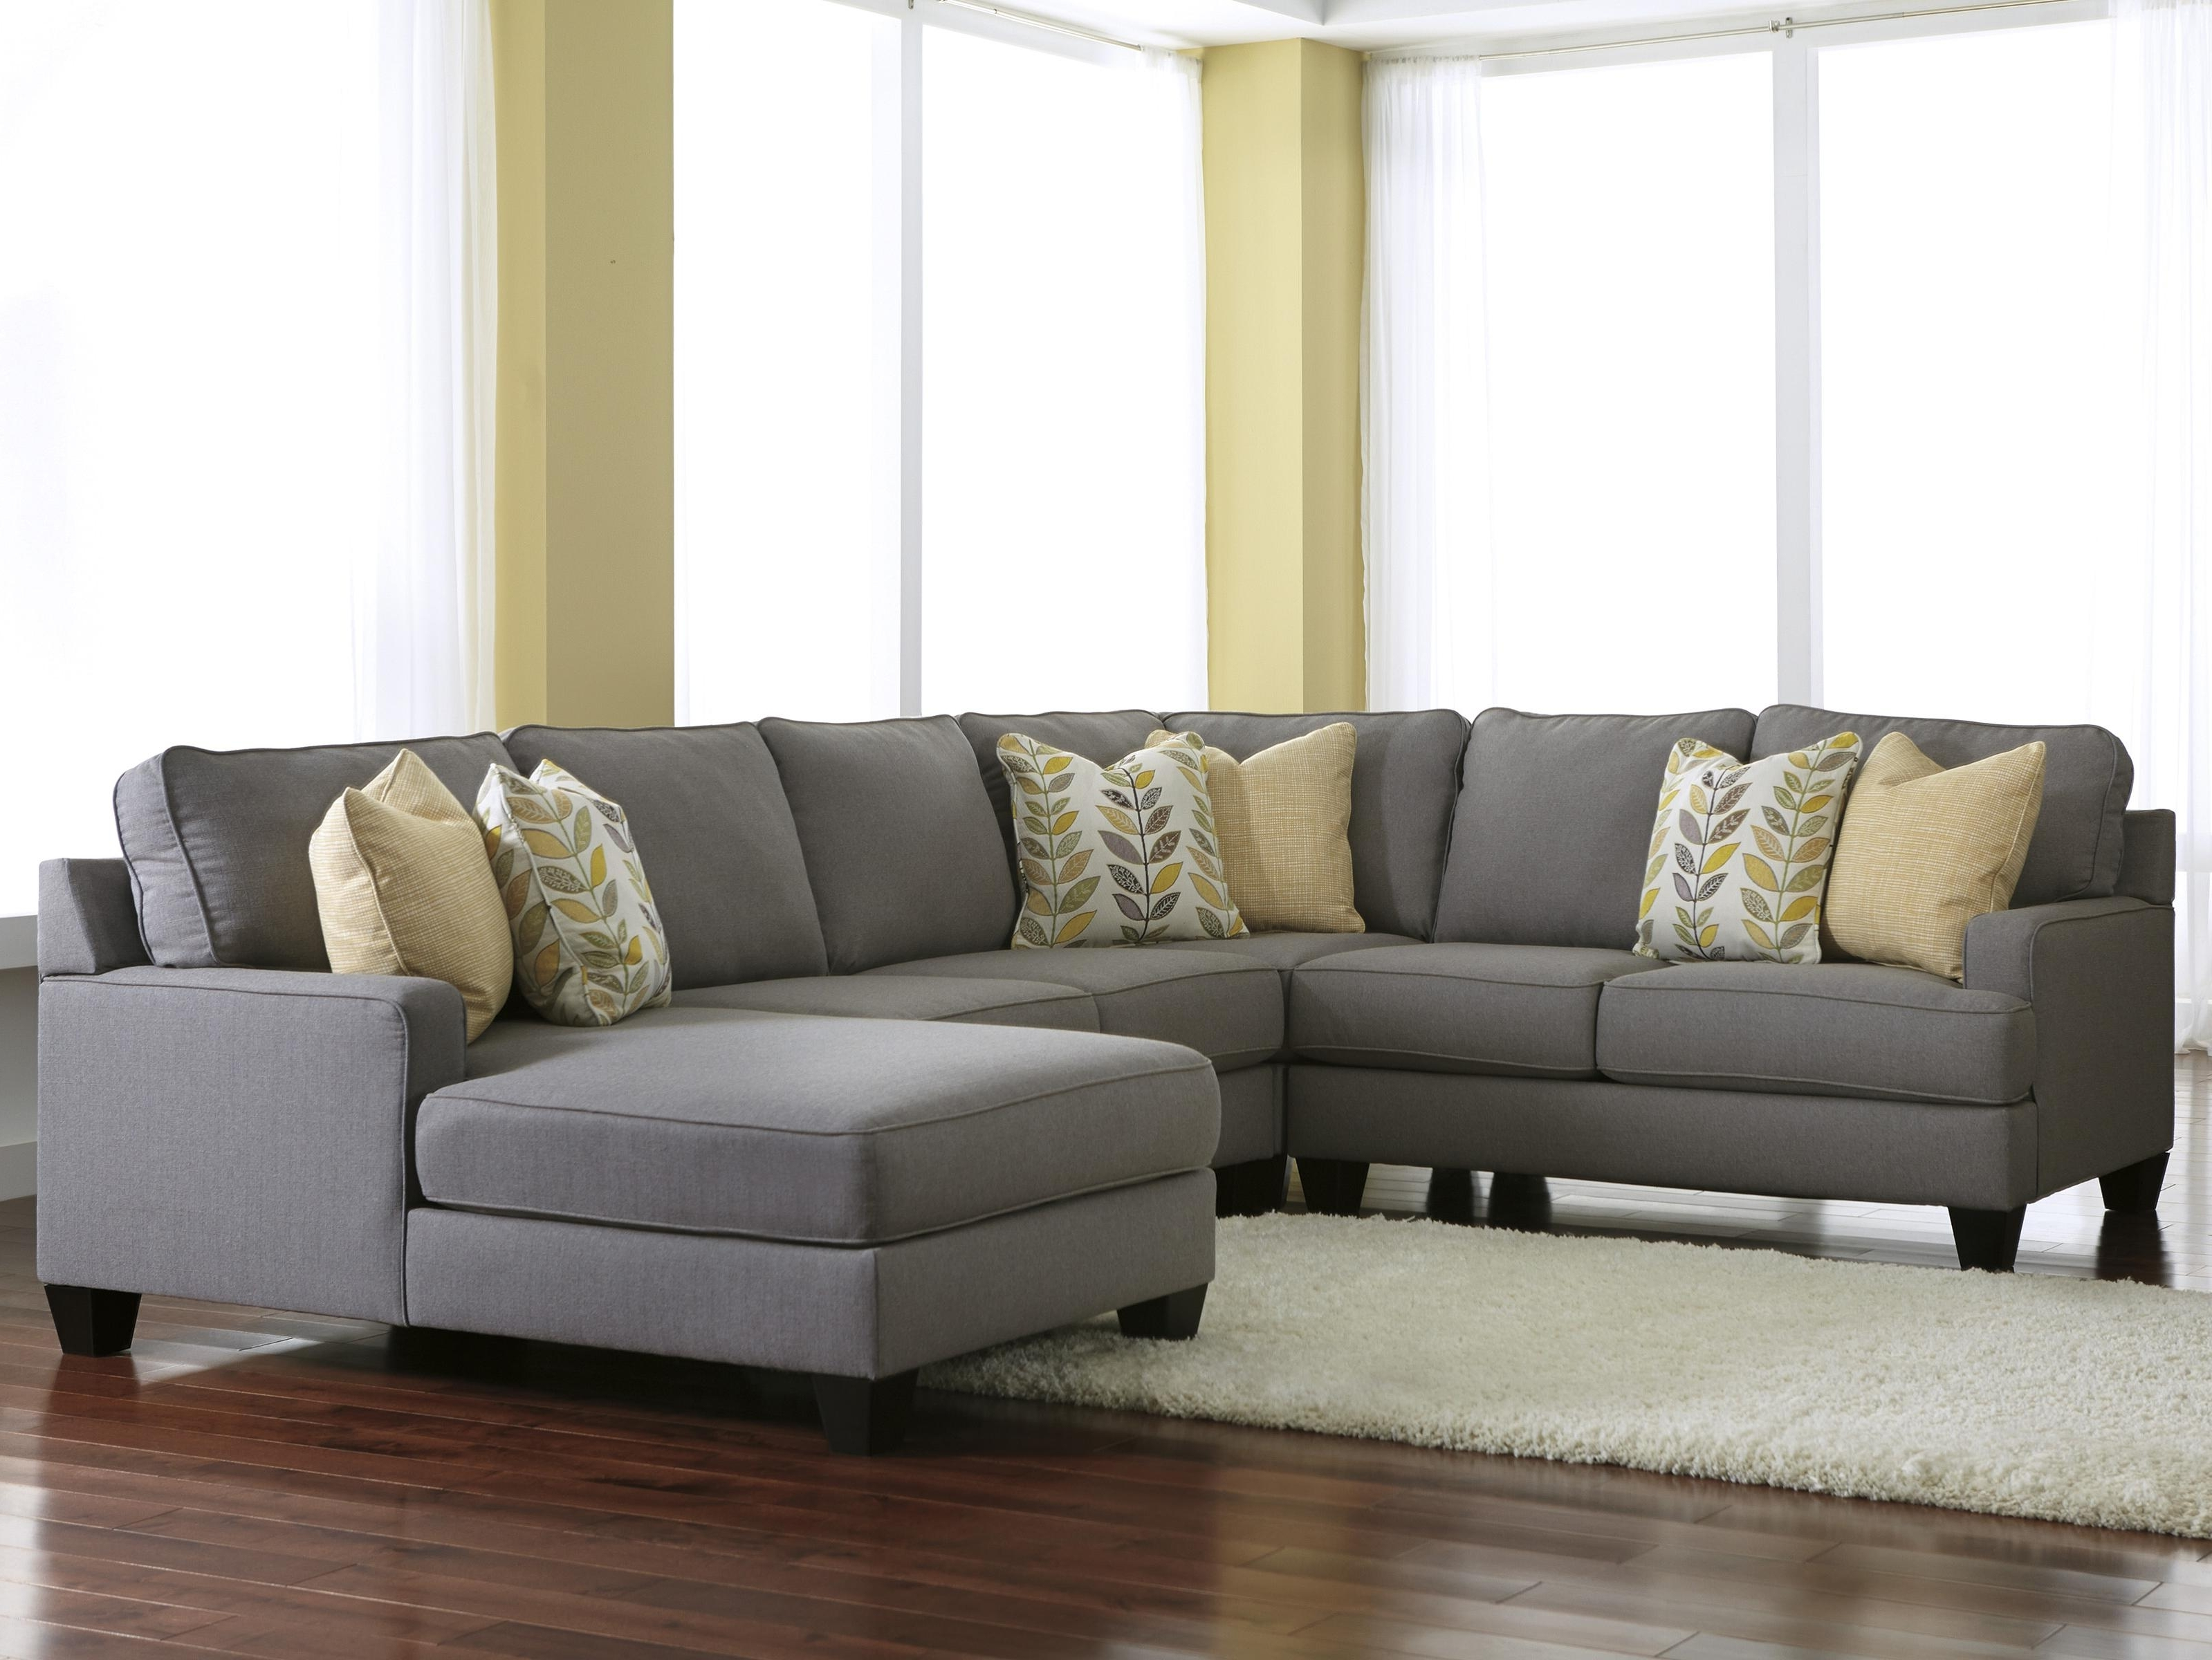 3 Piece Sectional Sofas With Chaise With Regard To Favorite Signature Designashley Chamberly – Alloy Modern 4 Piece (View 12 of 15)